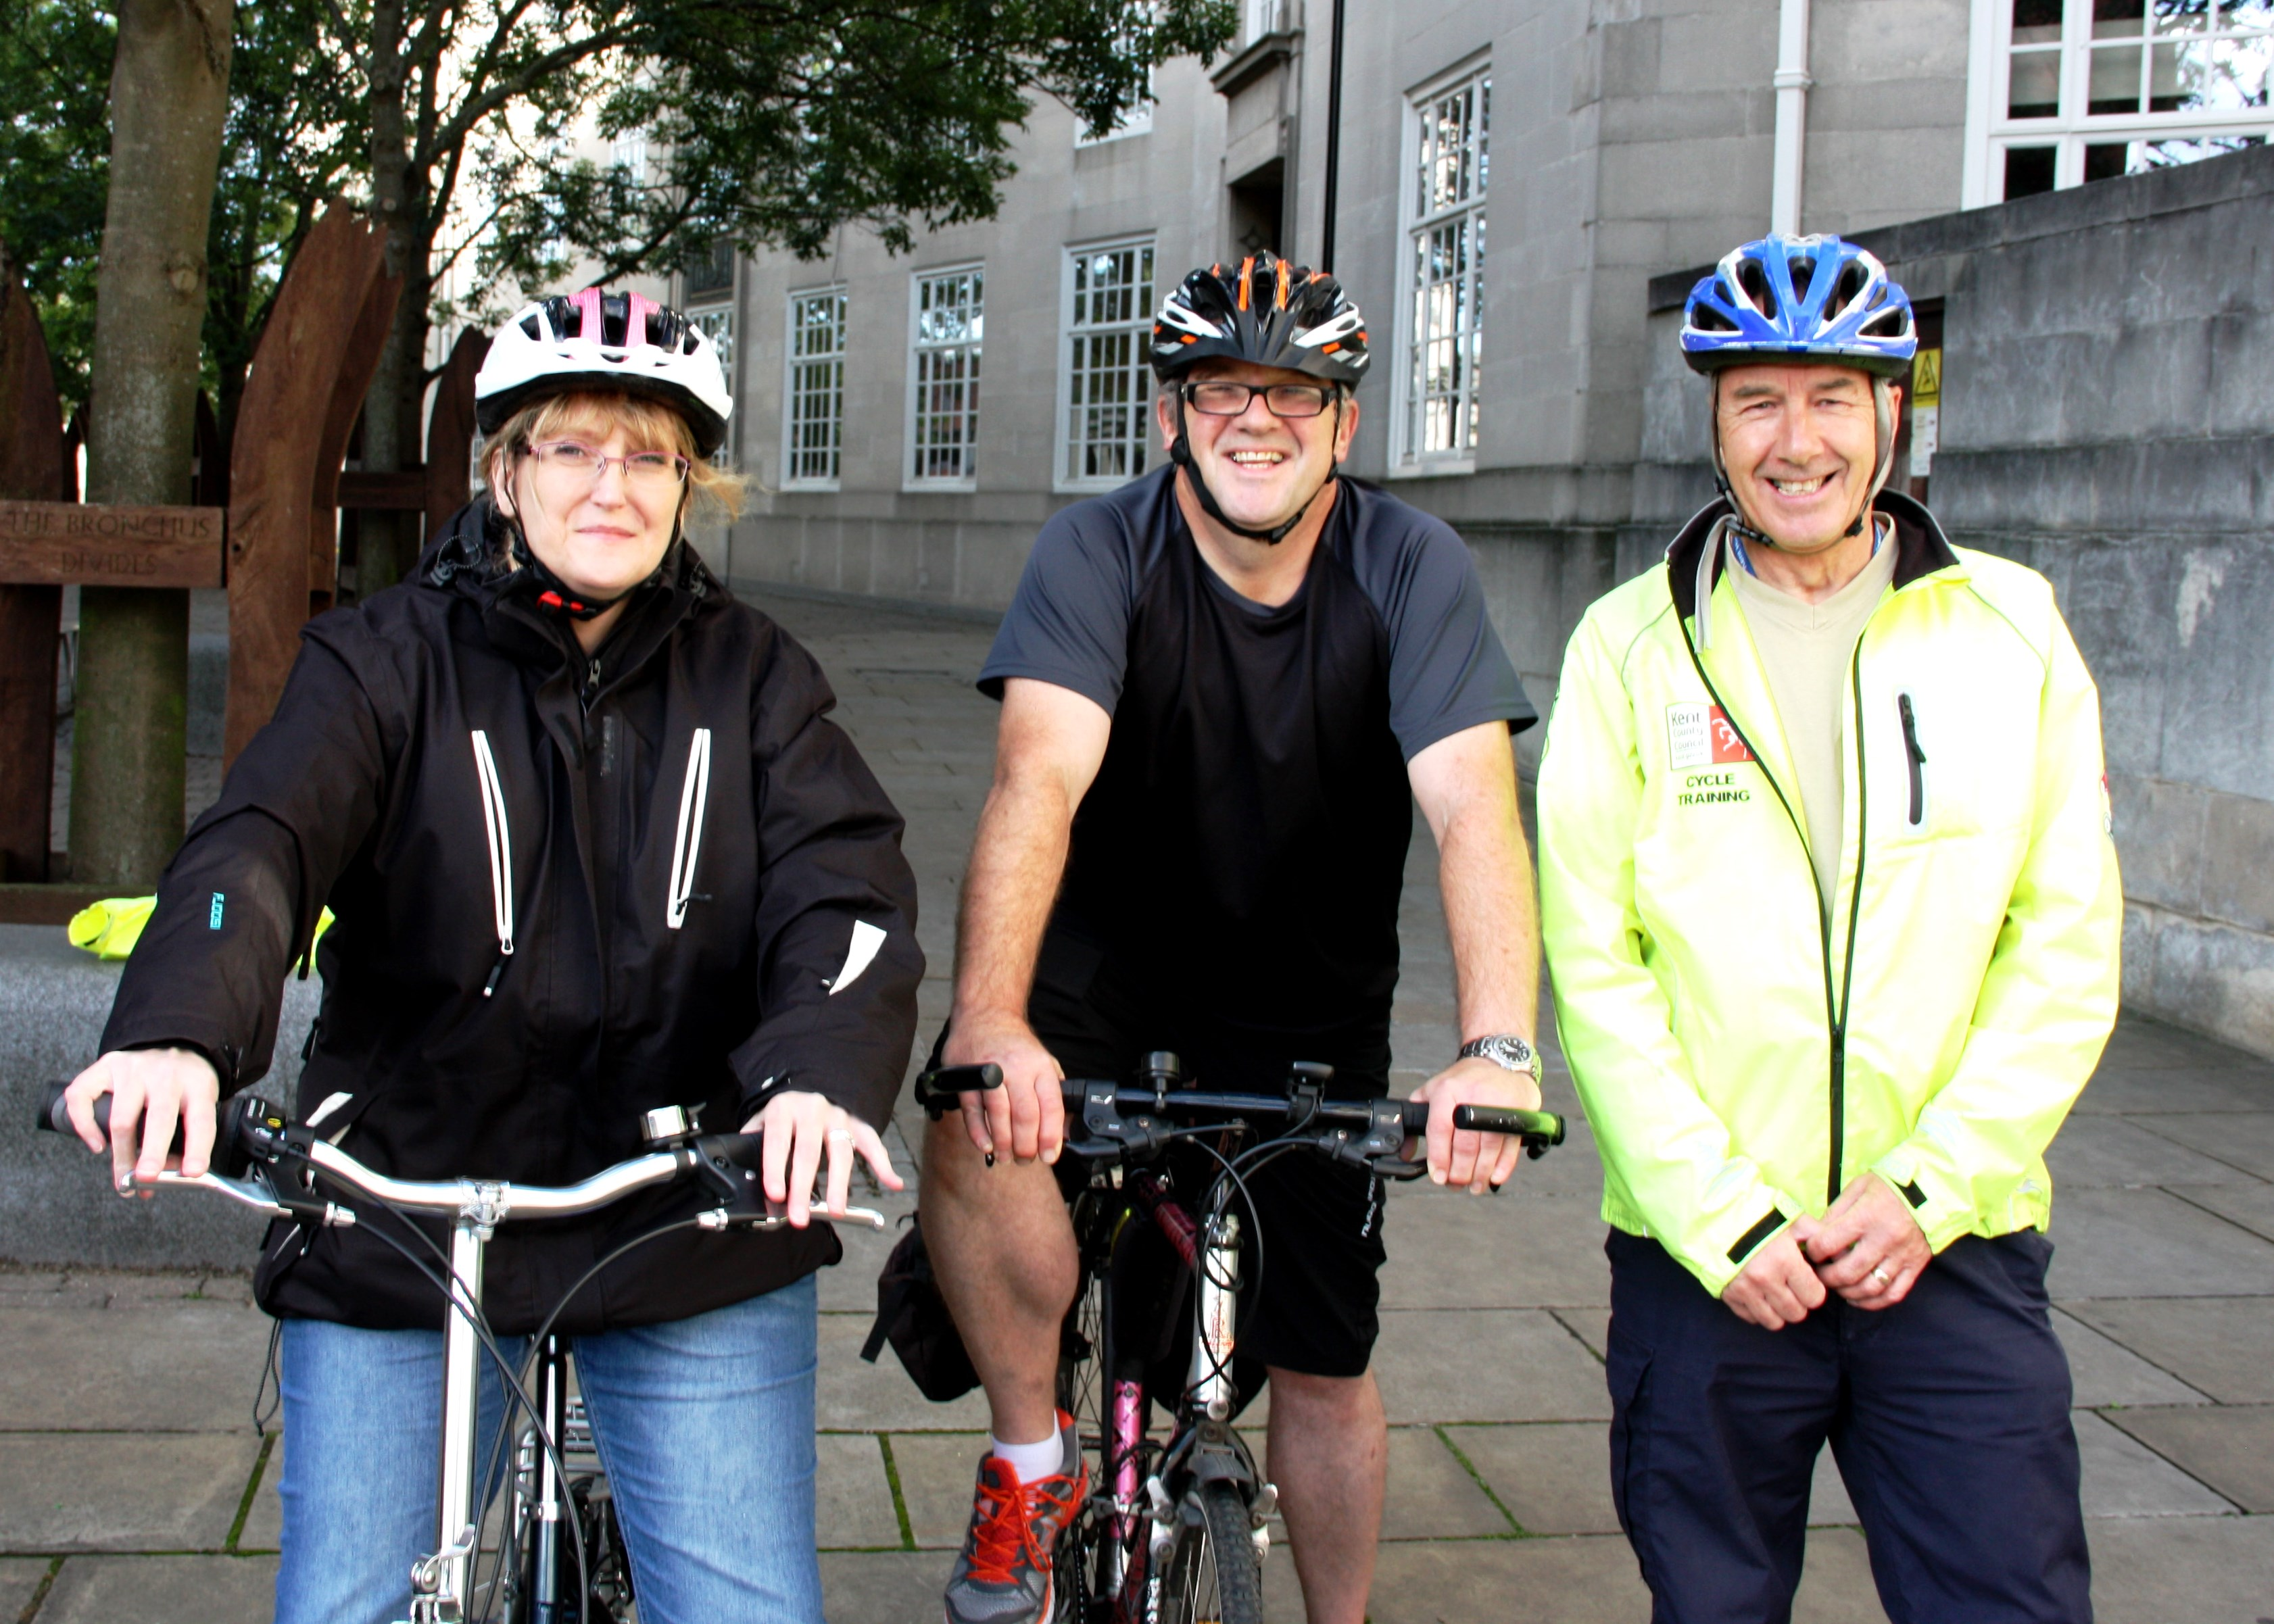 Free cycle training for adults – get back in the saddle